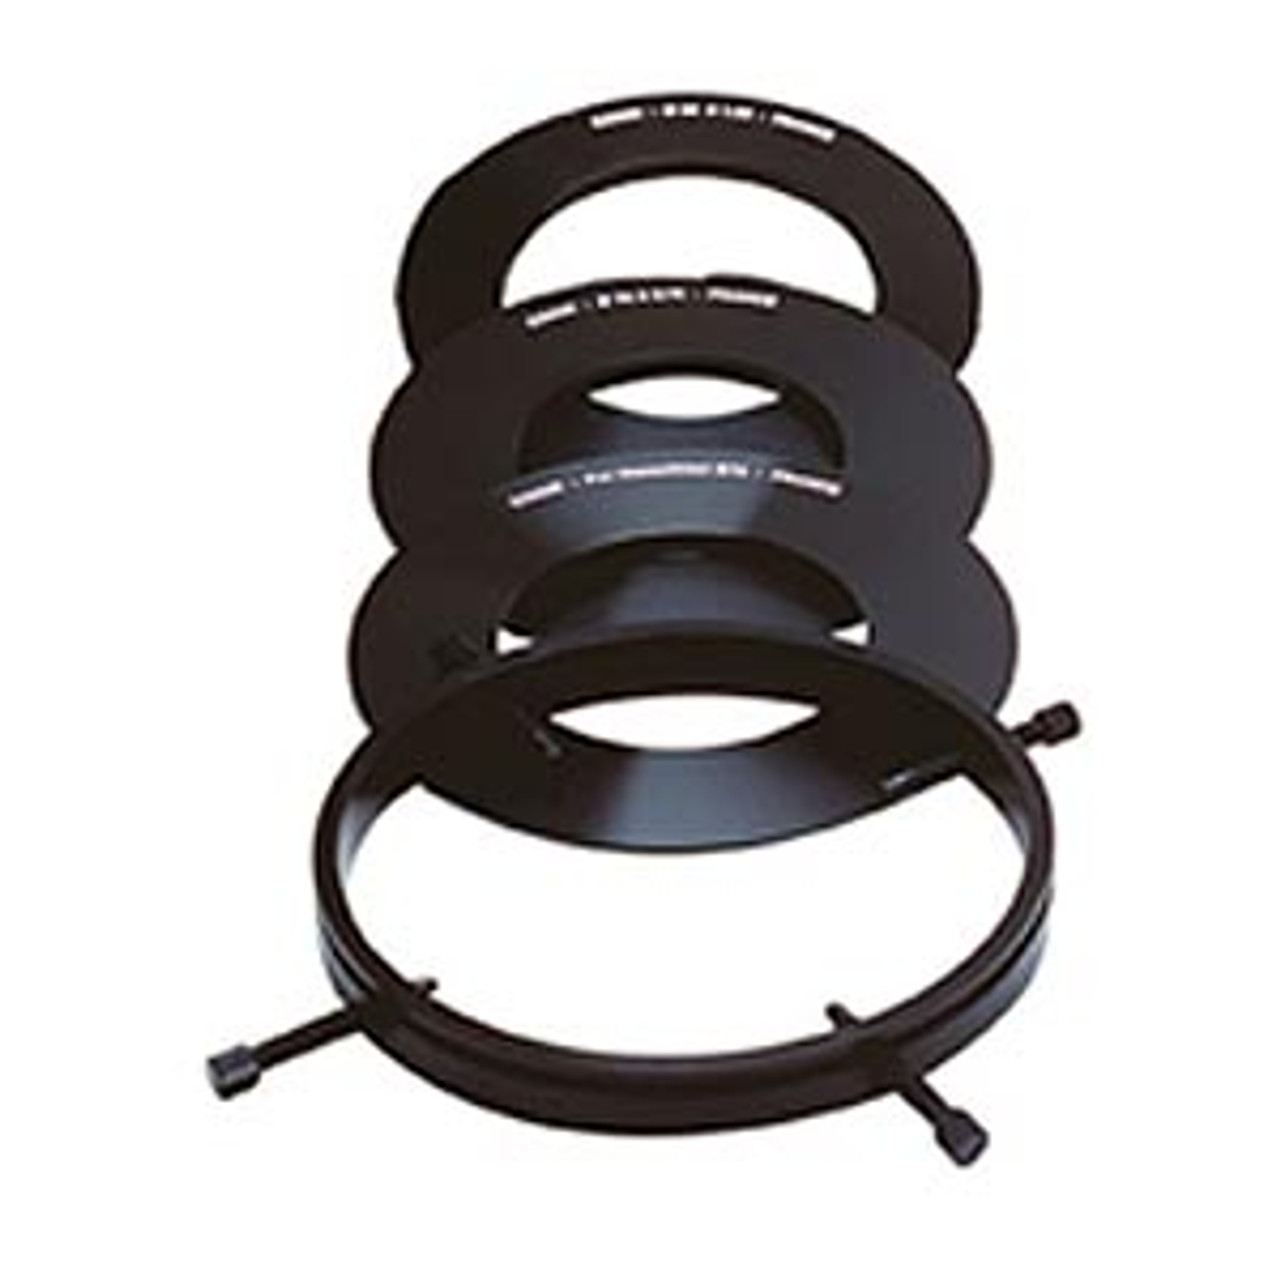 Cokin P452 52mm Adapter Ring